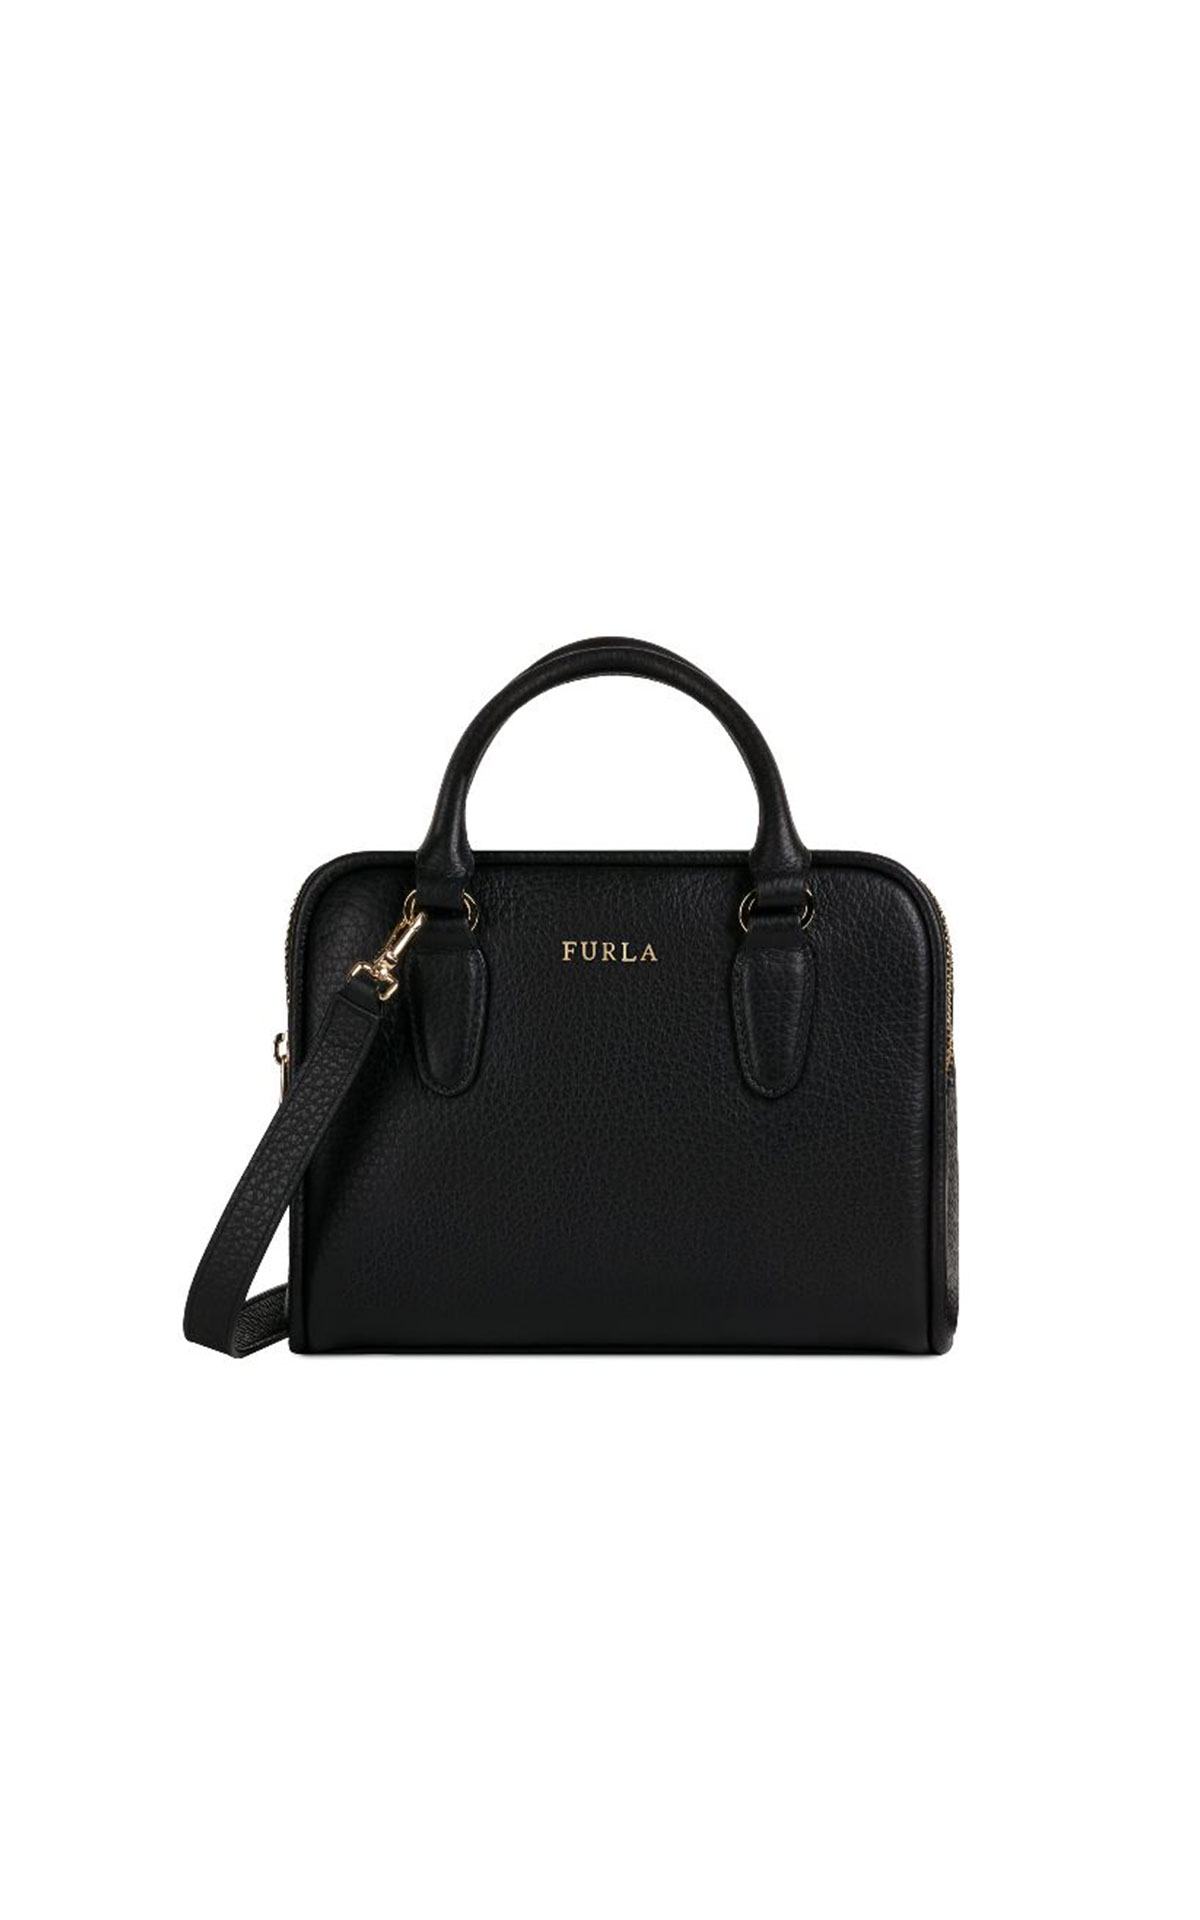 Furla SIRI Satchel in yellow at Maasmechelen Village